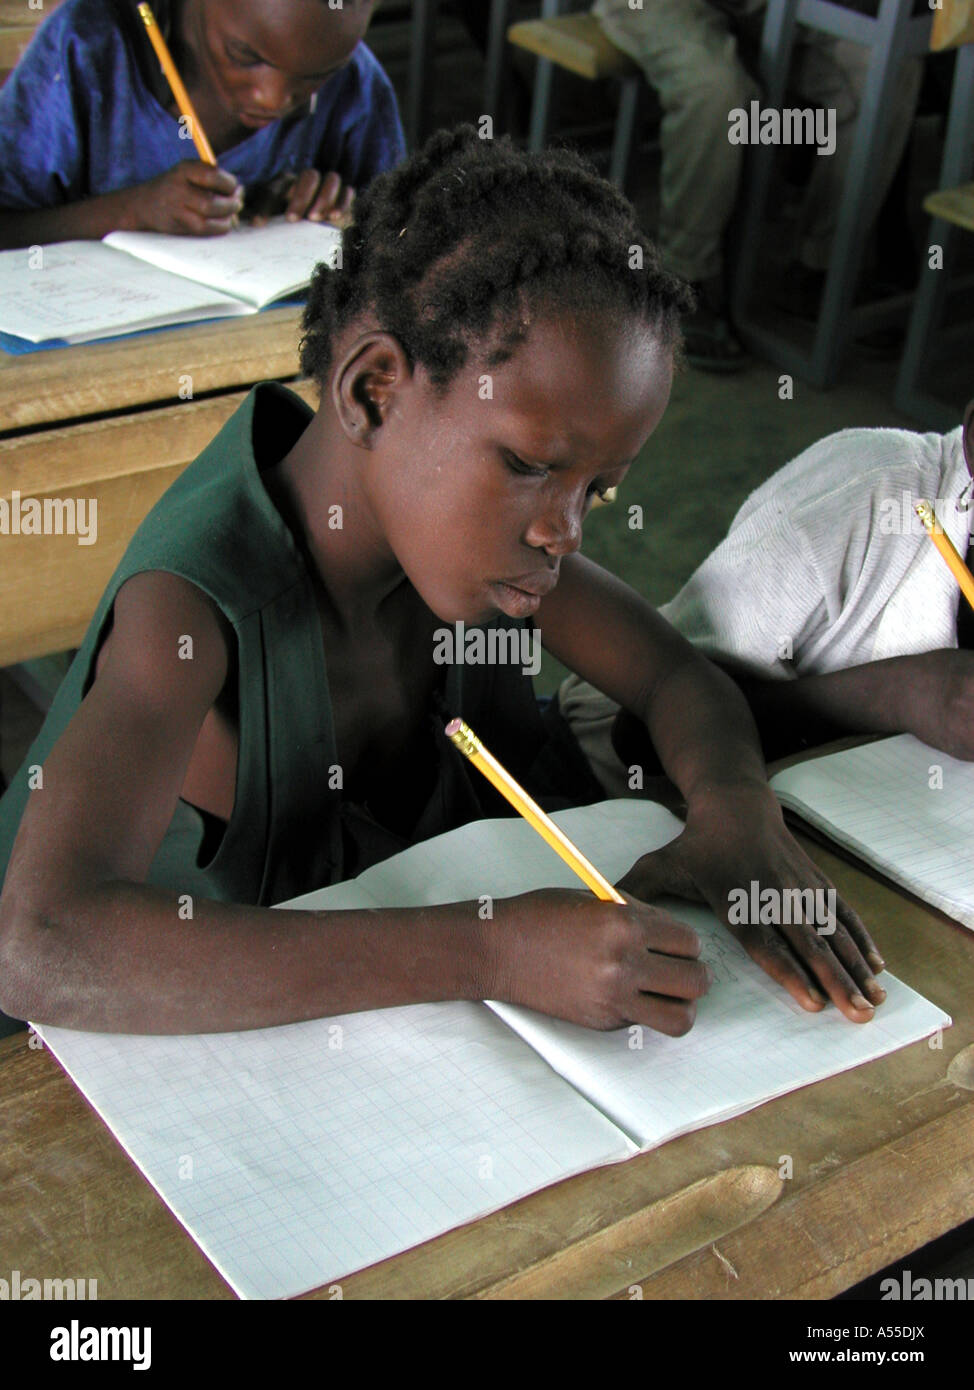 Painet ik0318 burkina faso school provided by crs fada country developing nation less economically developed culture - Stock Image